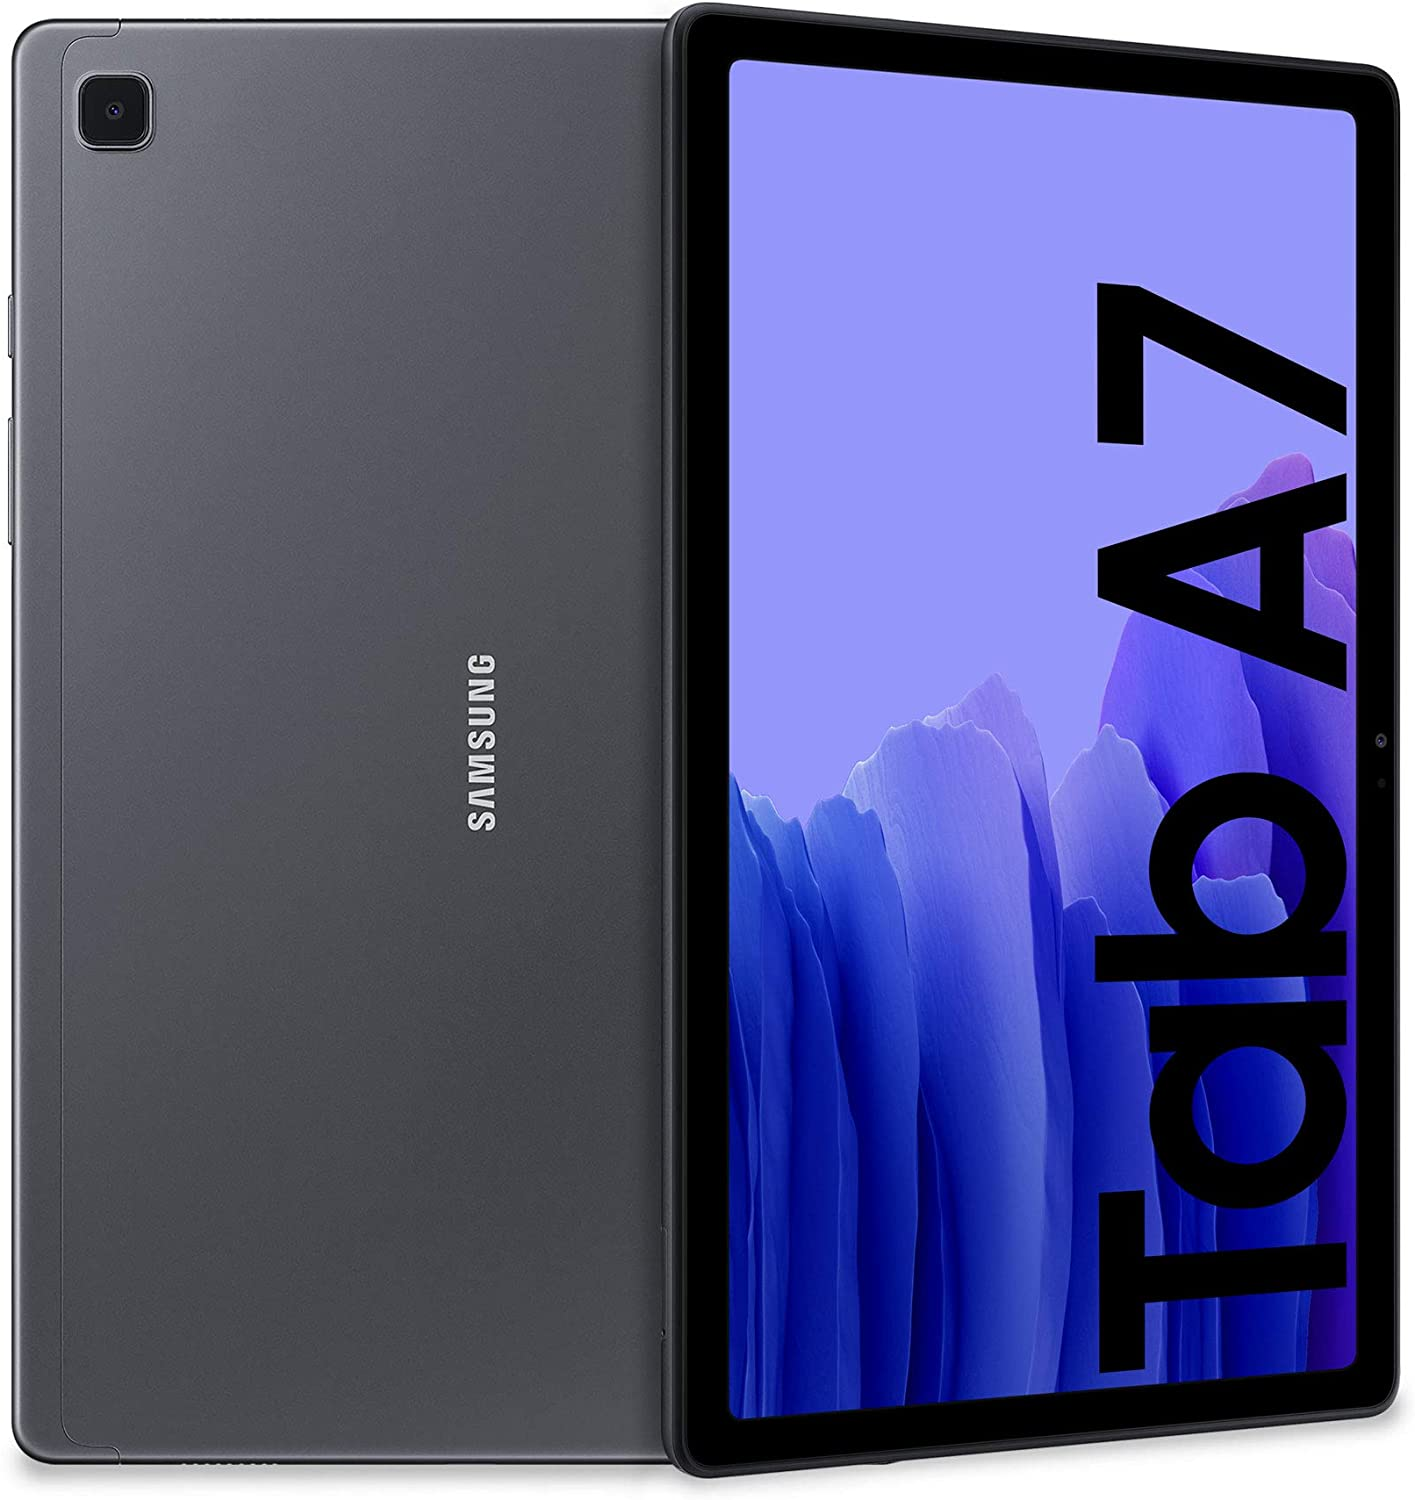 Tablet Samsung Galaxy Tab A7: differenza tra versione LTE e Wi-Fi